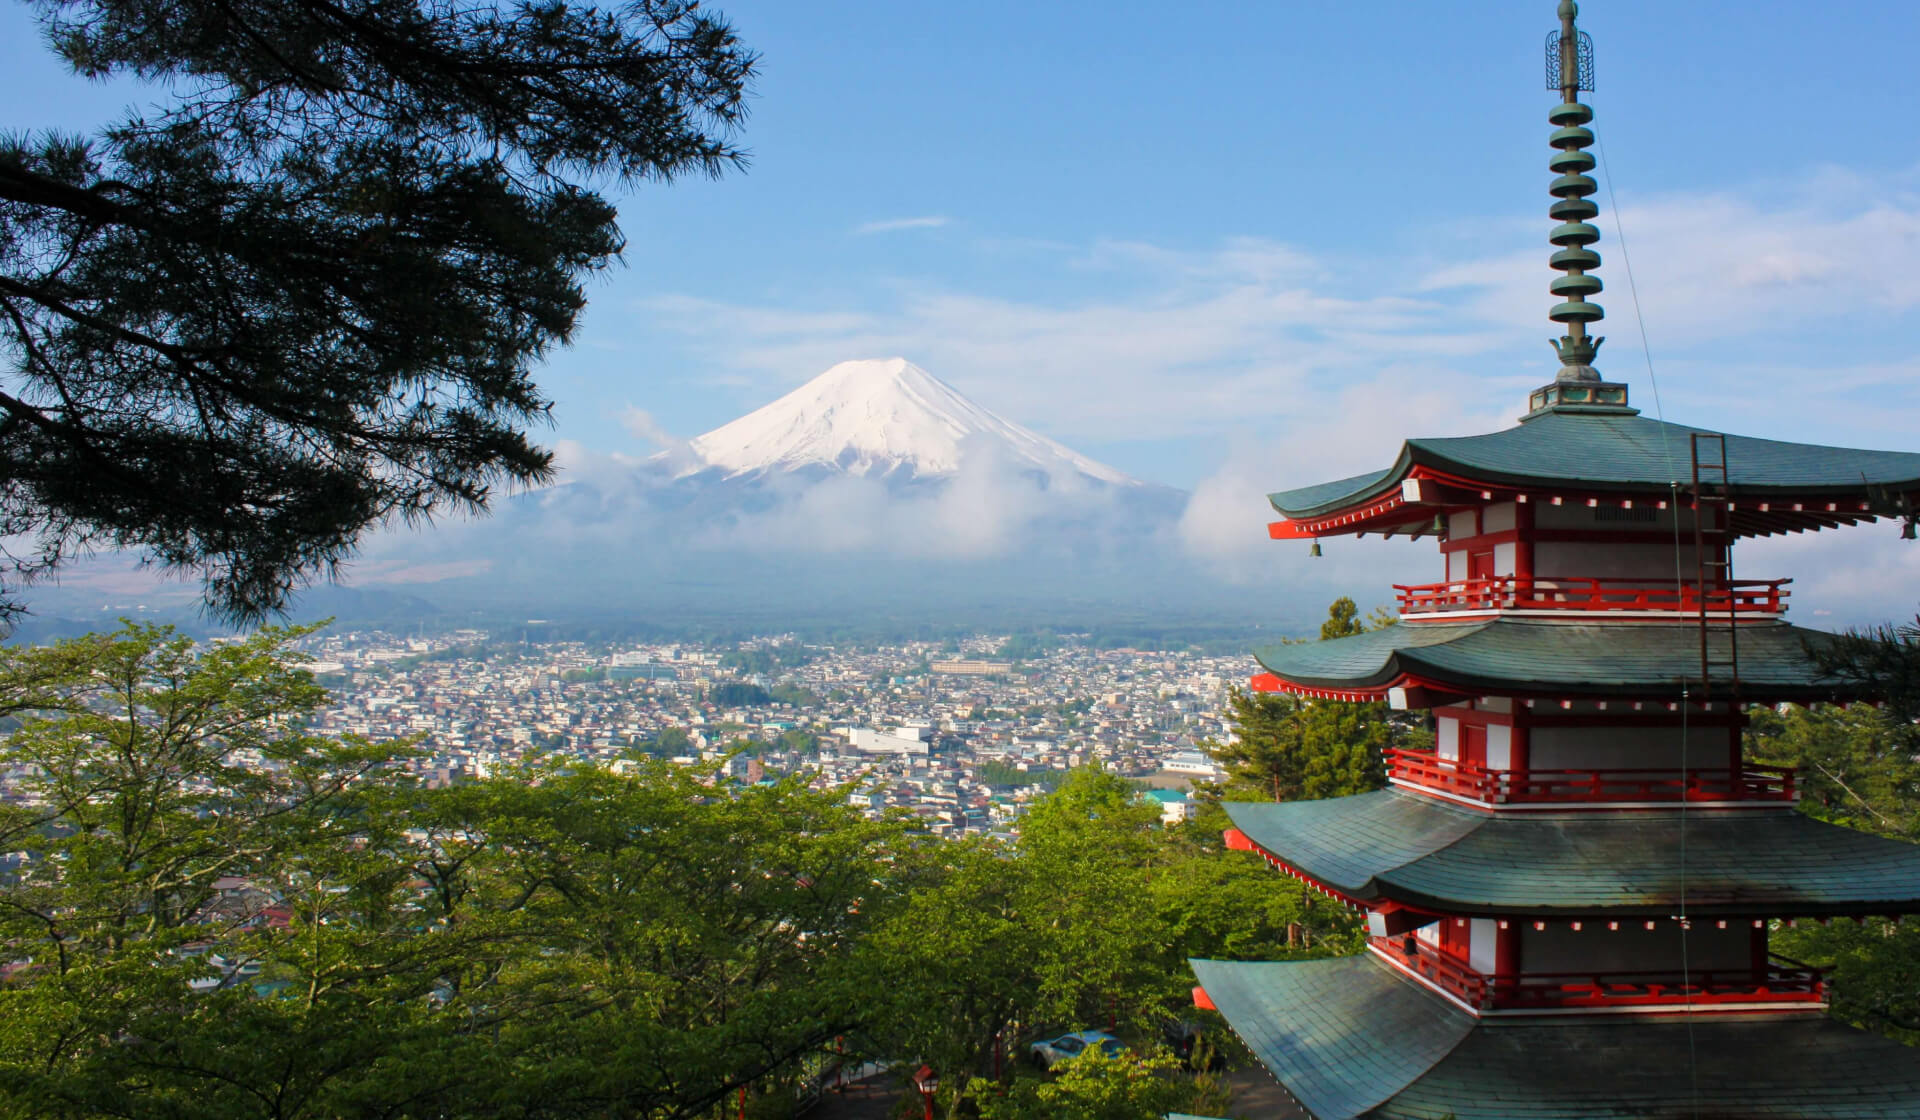 Japanese temple overlooking a city landscape and enormous snow-capped mountain